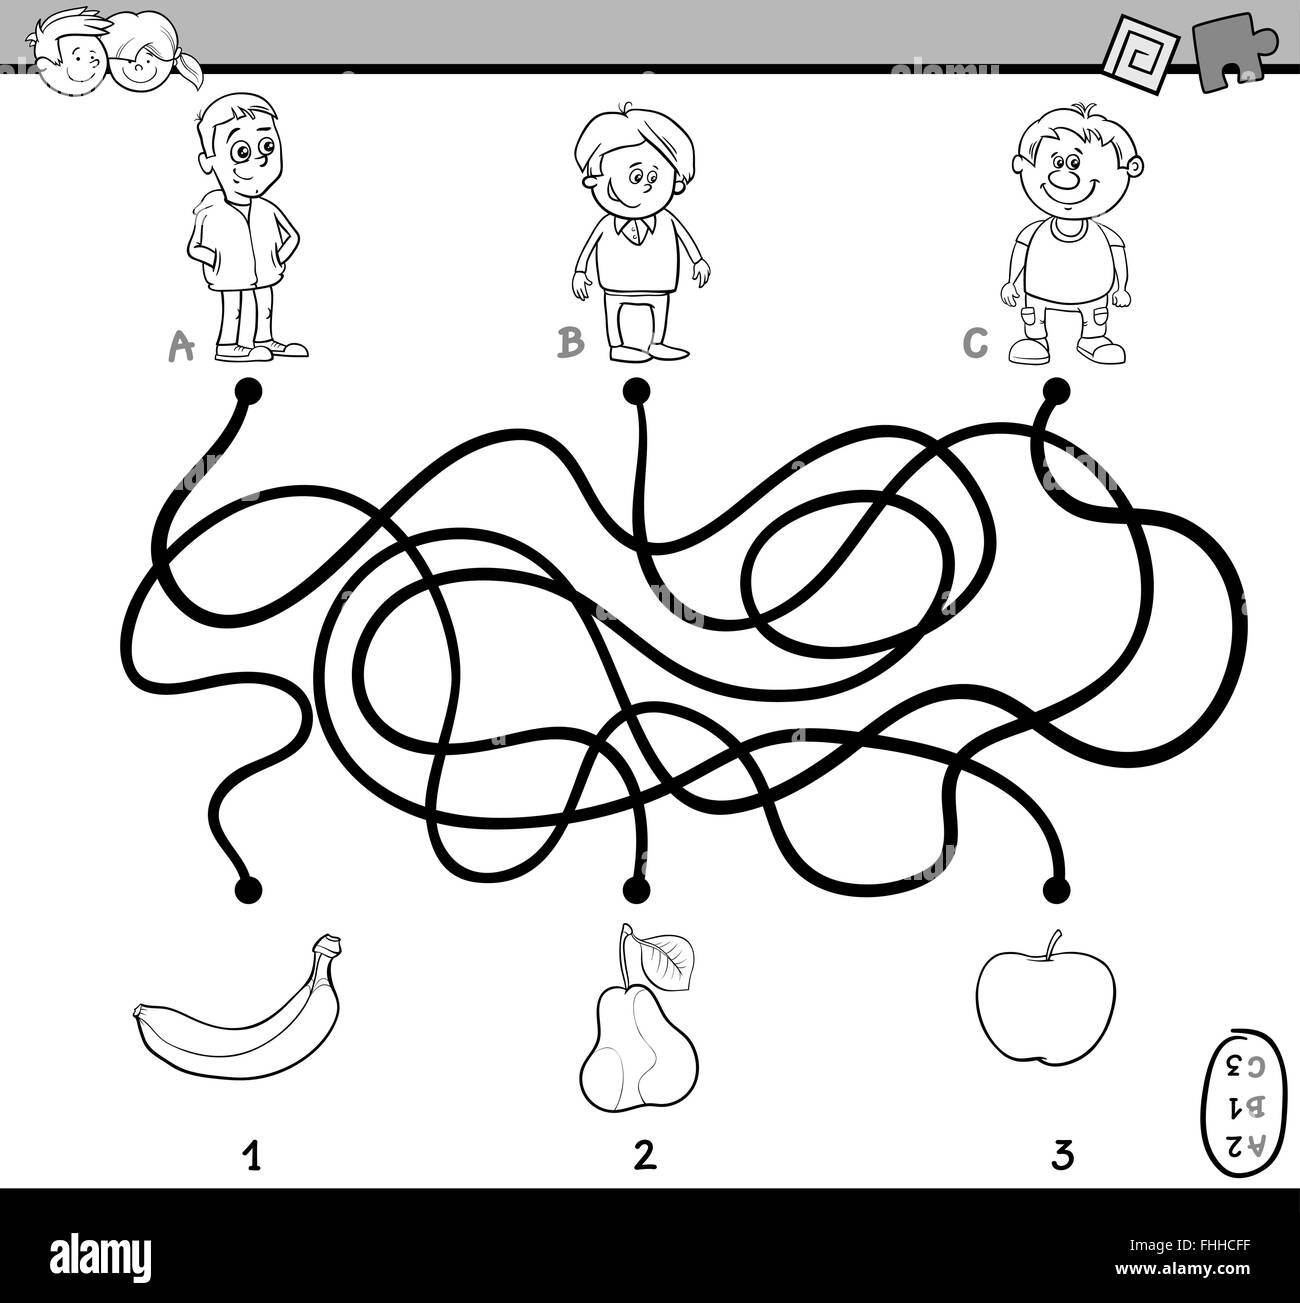 Black And White Cartoon Illustration Of Education Paths Or